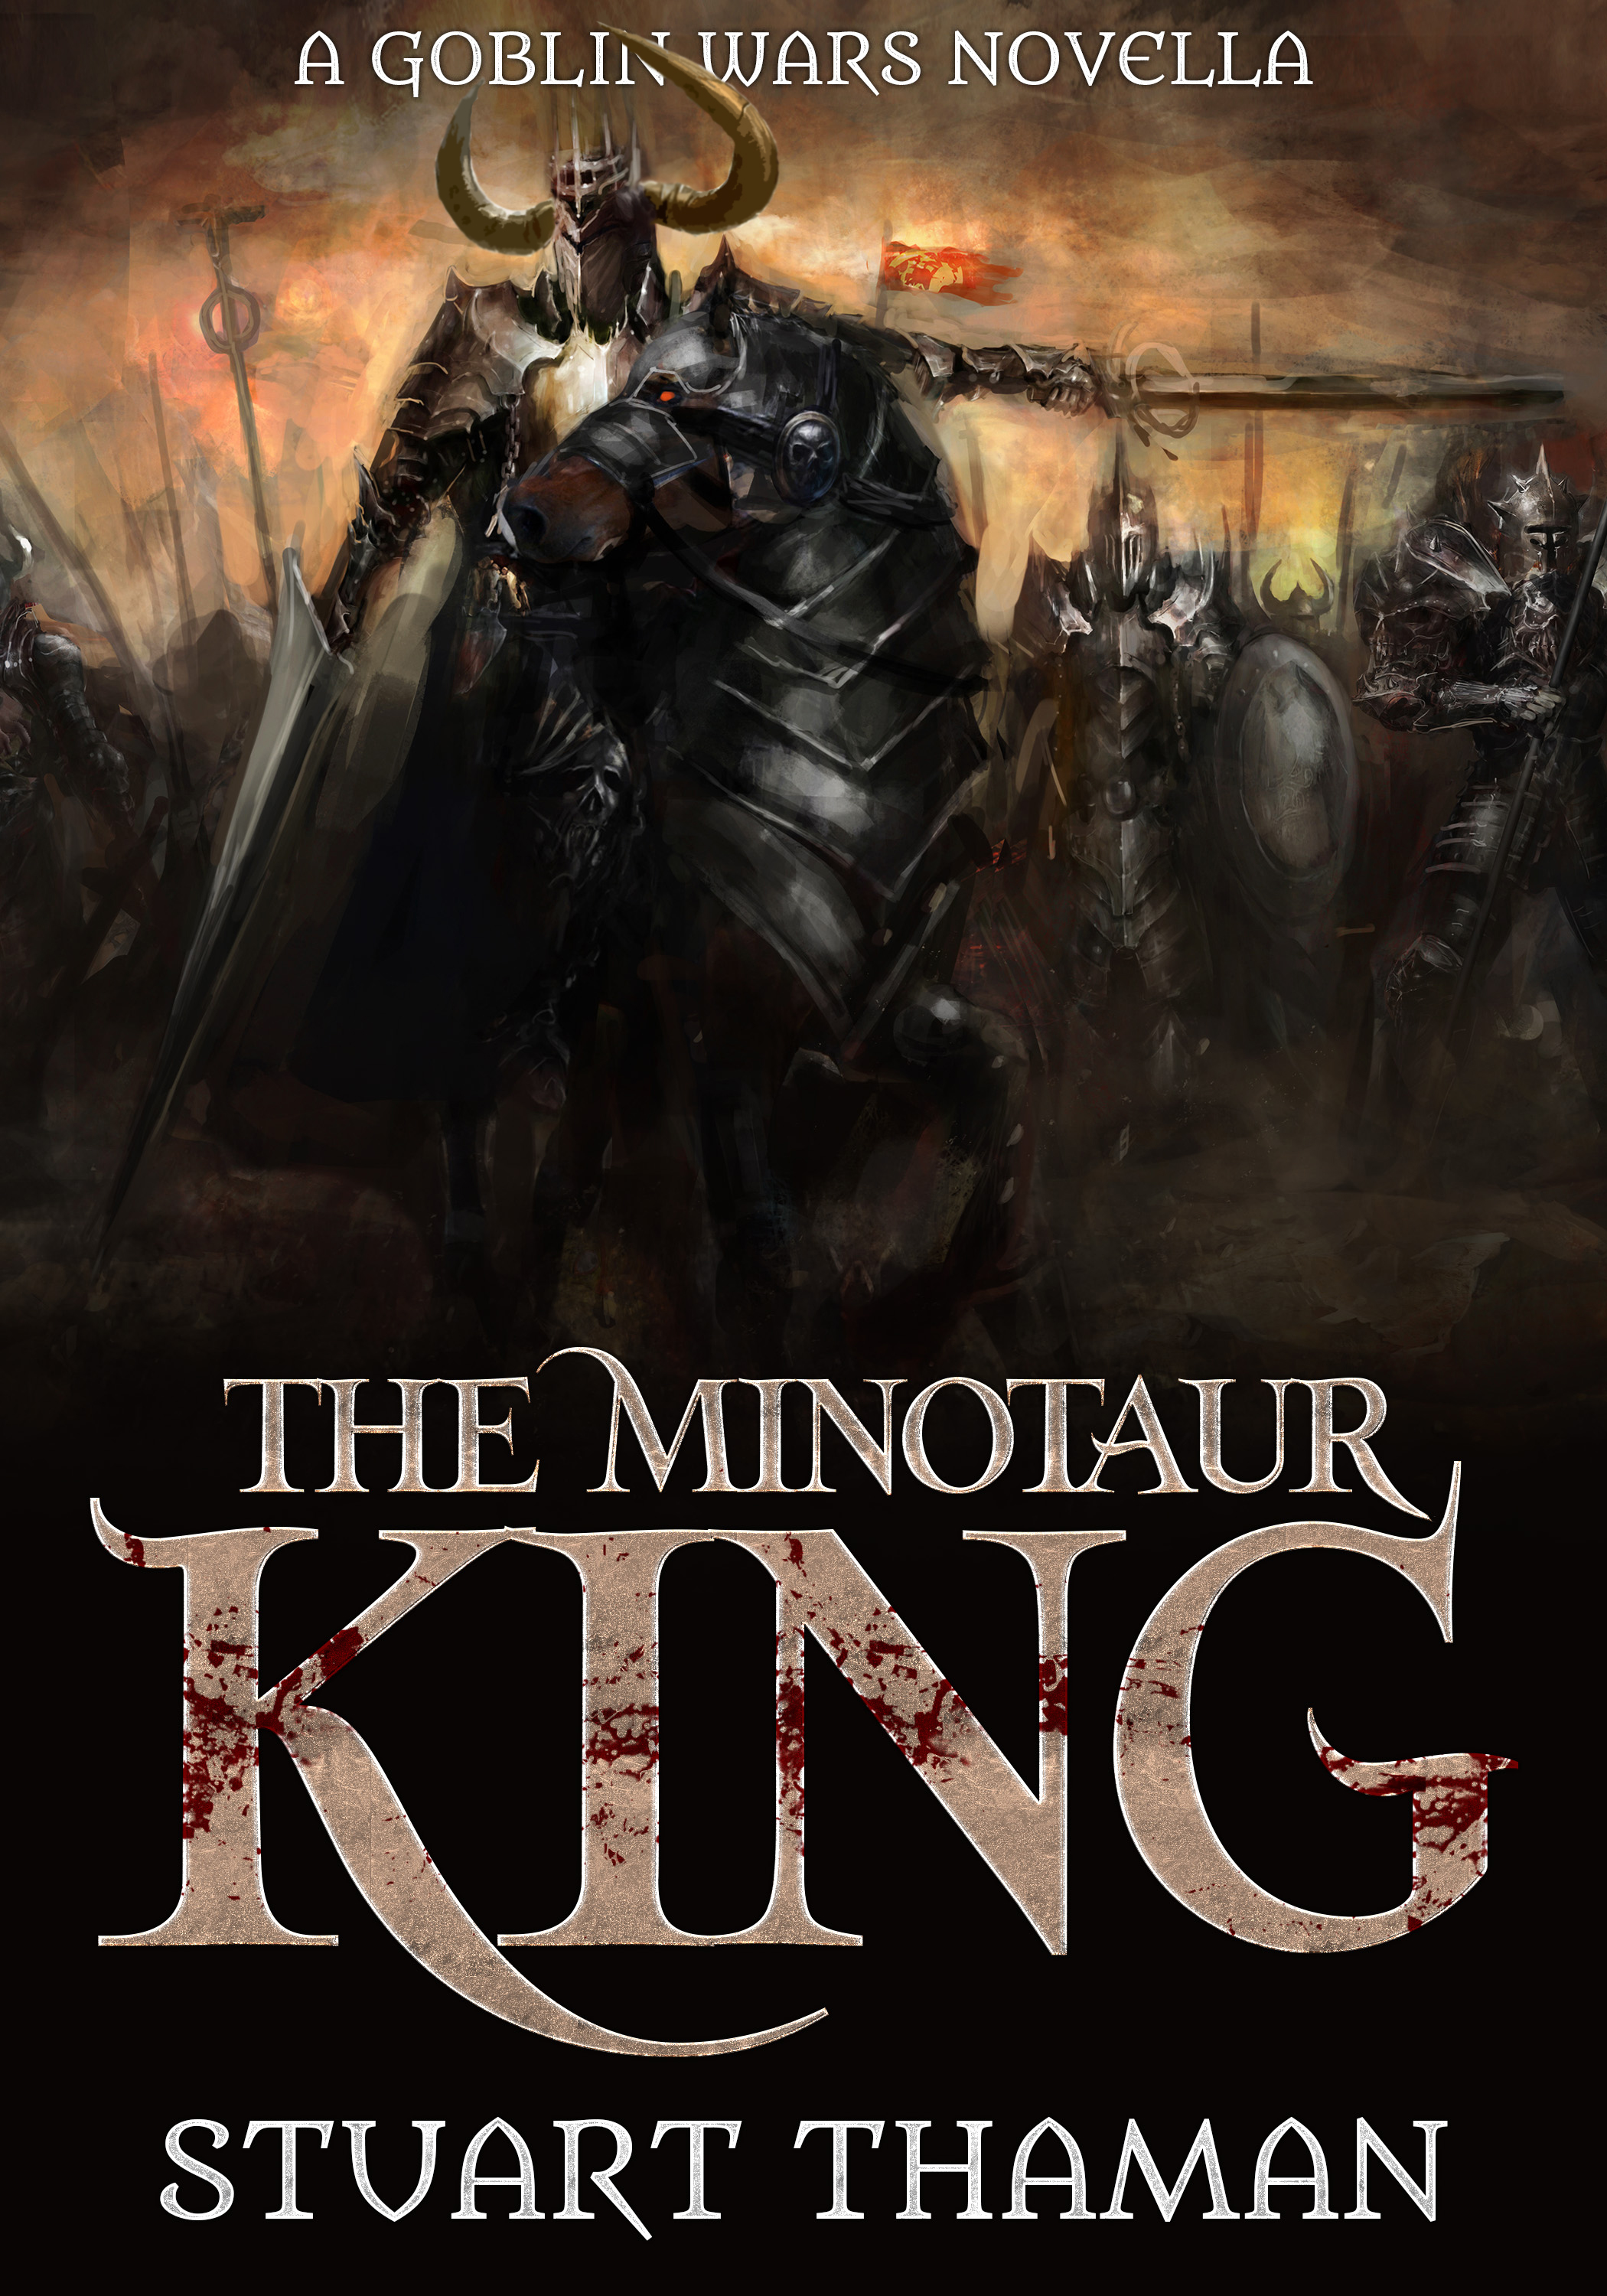 The Minotaur King